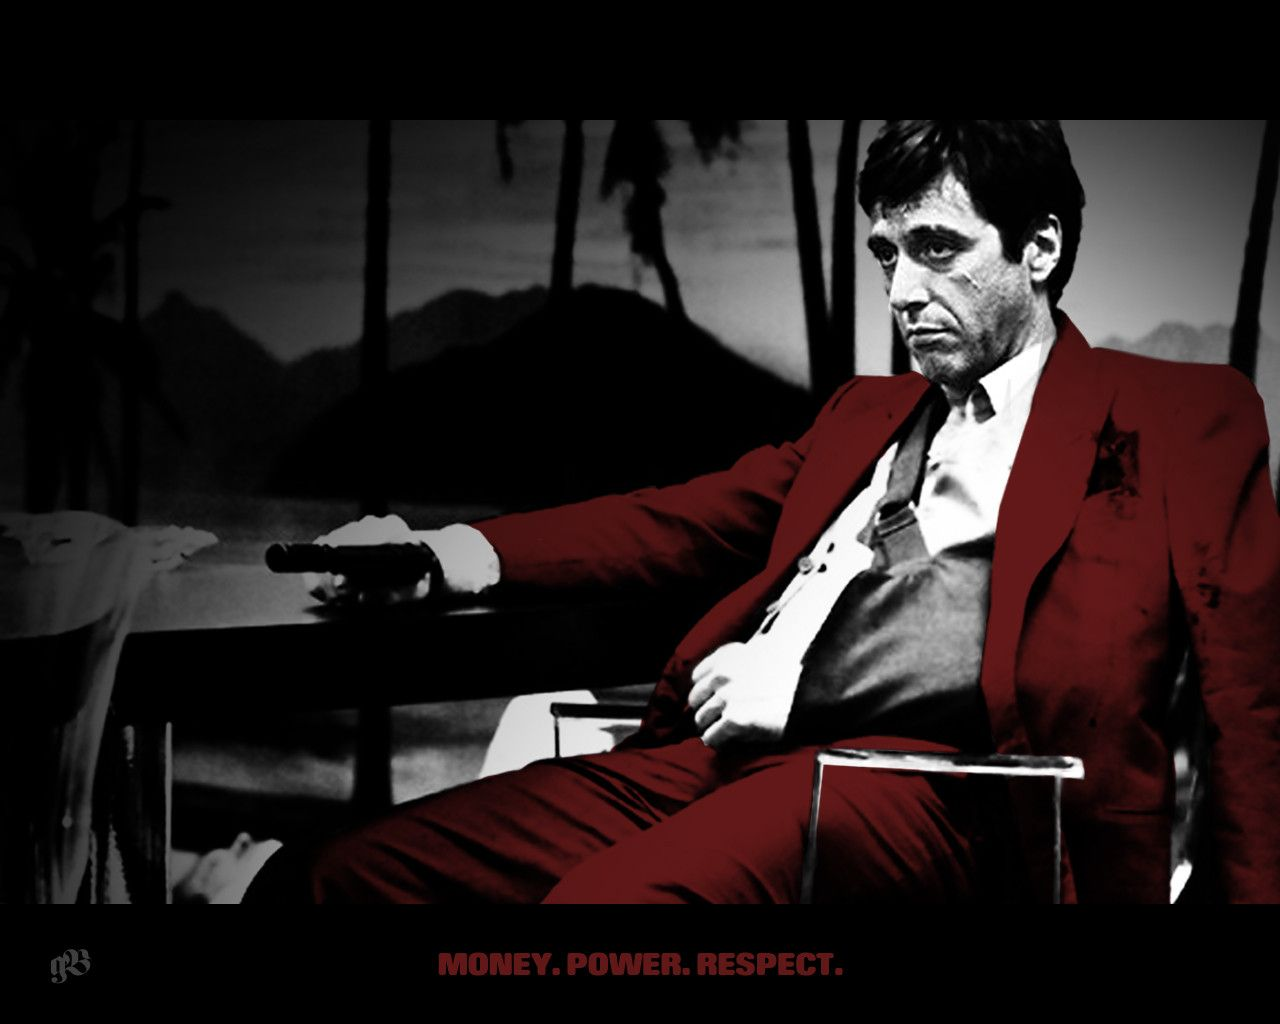 Scarface Hd Wallpaper 1280x1024